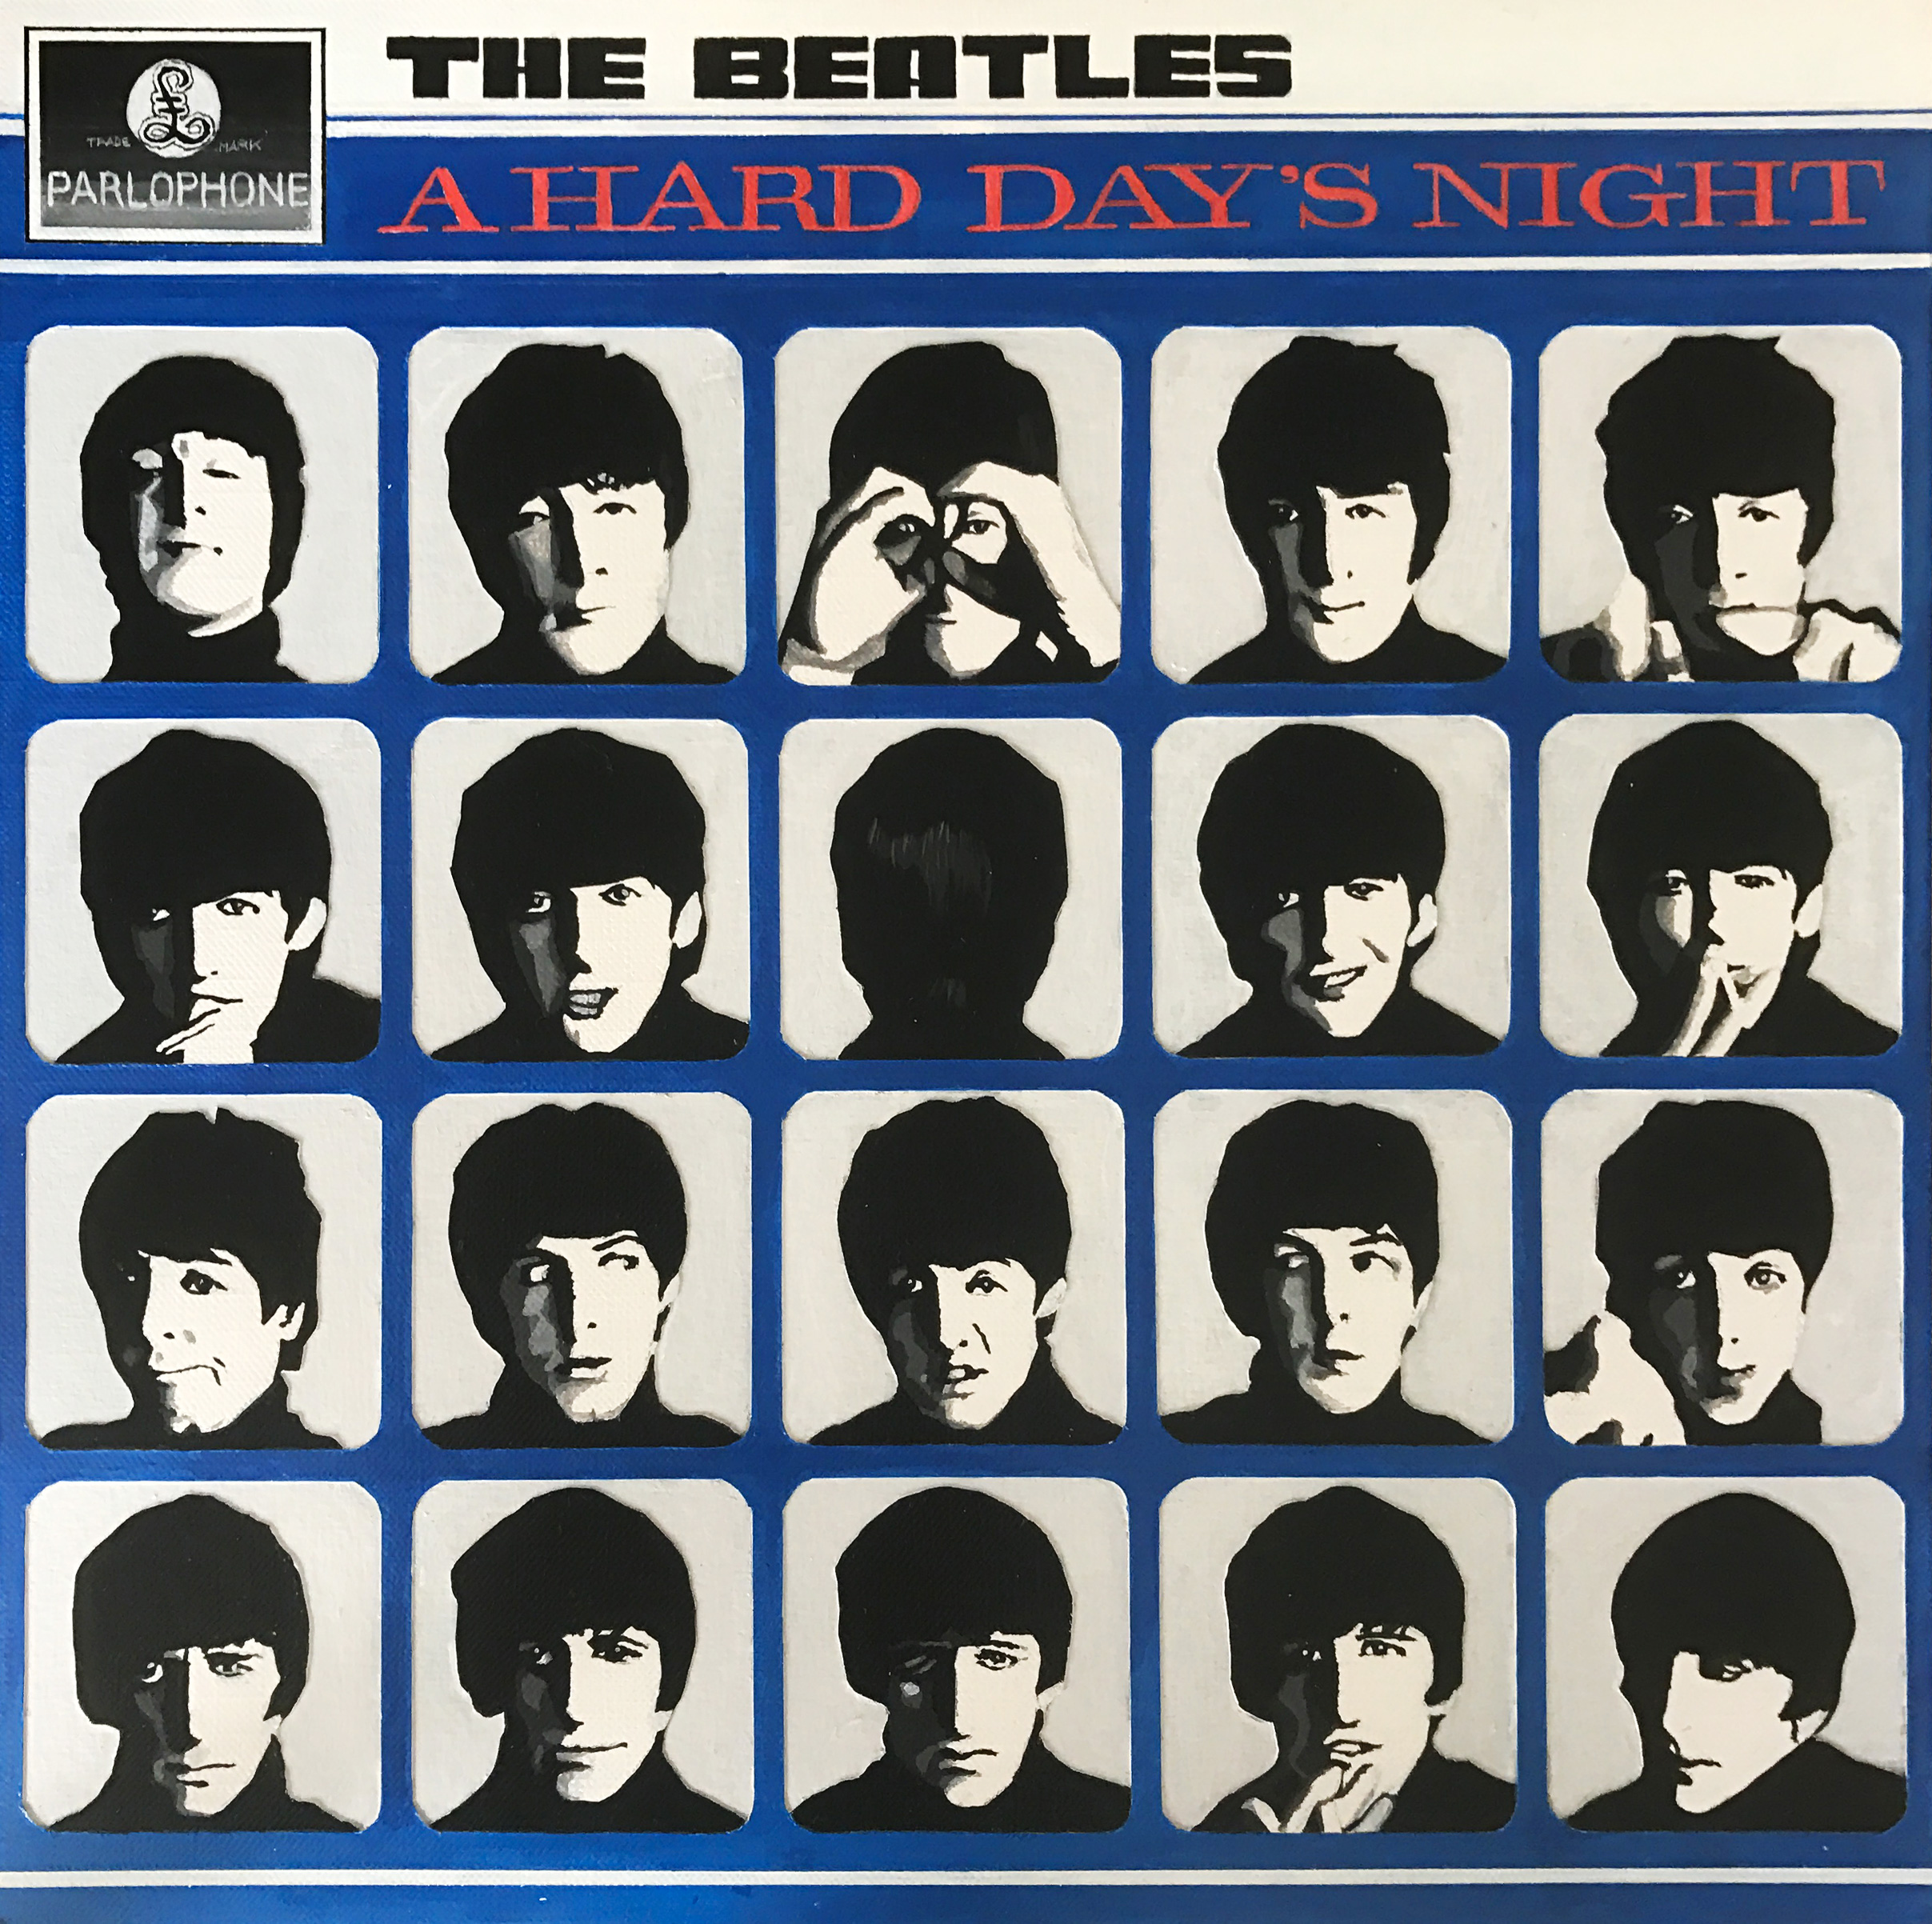 A Hard Day's Night (Painting)